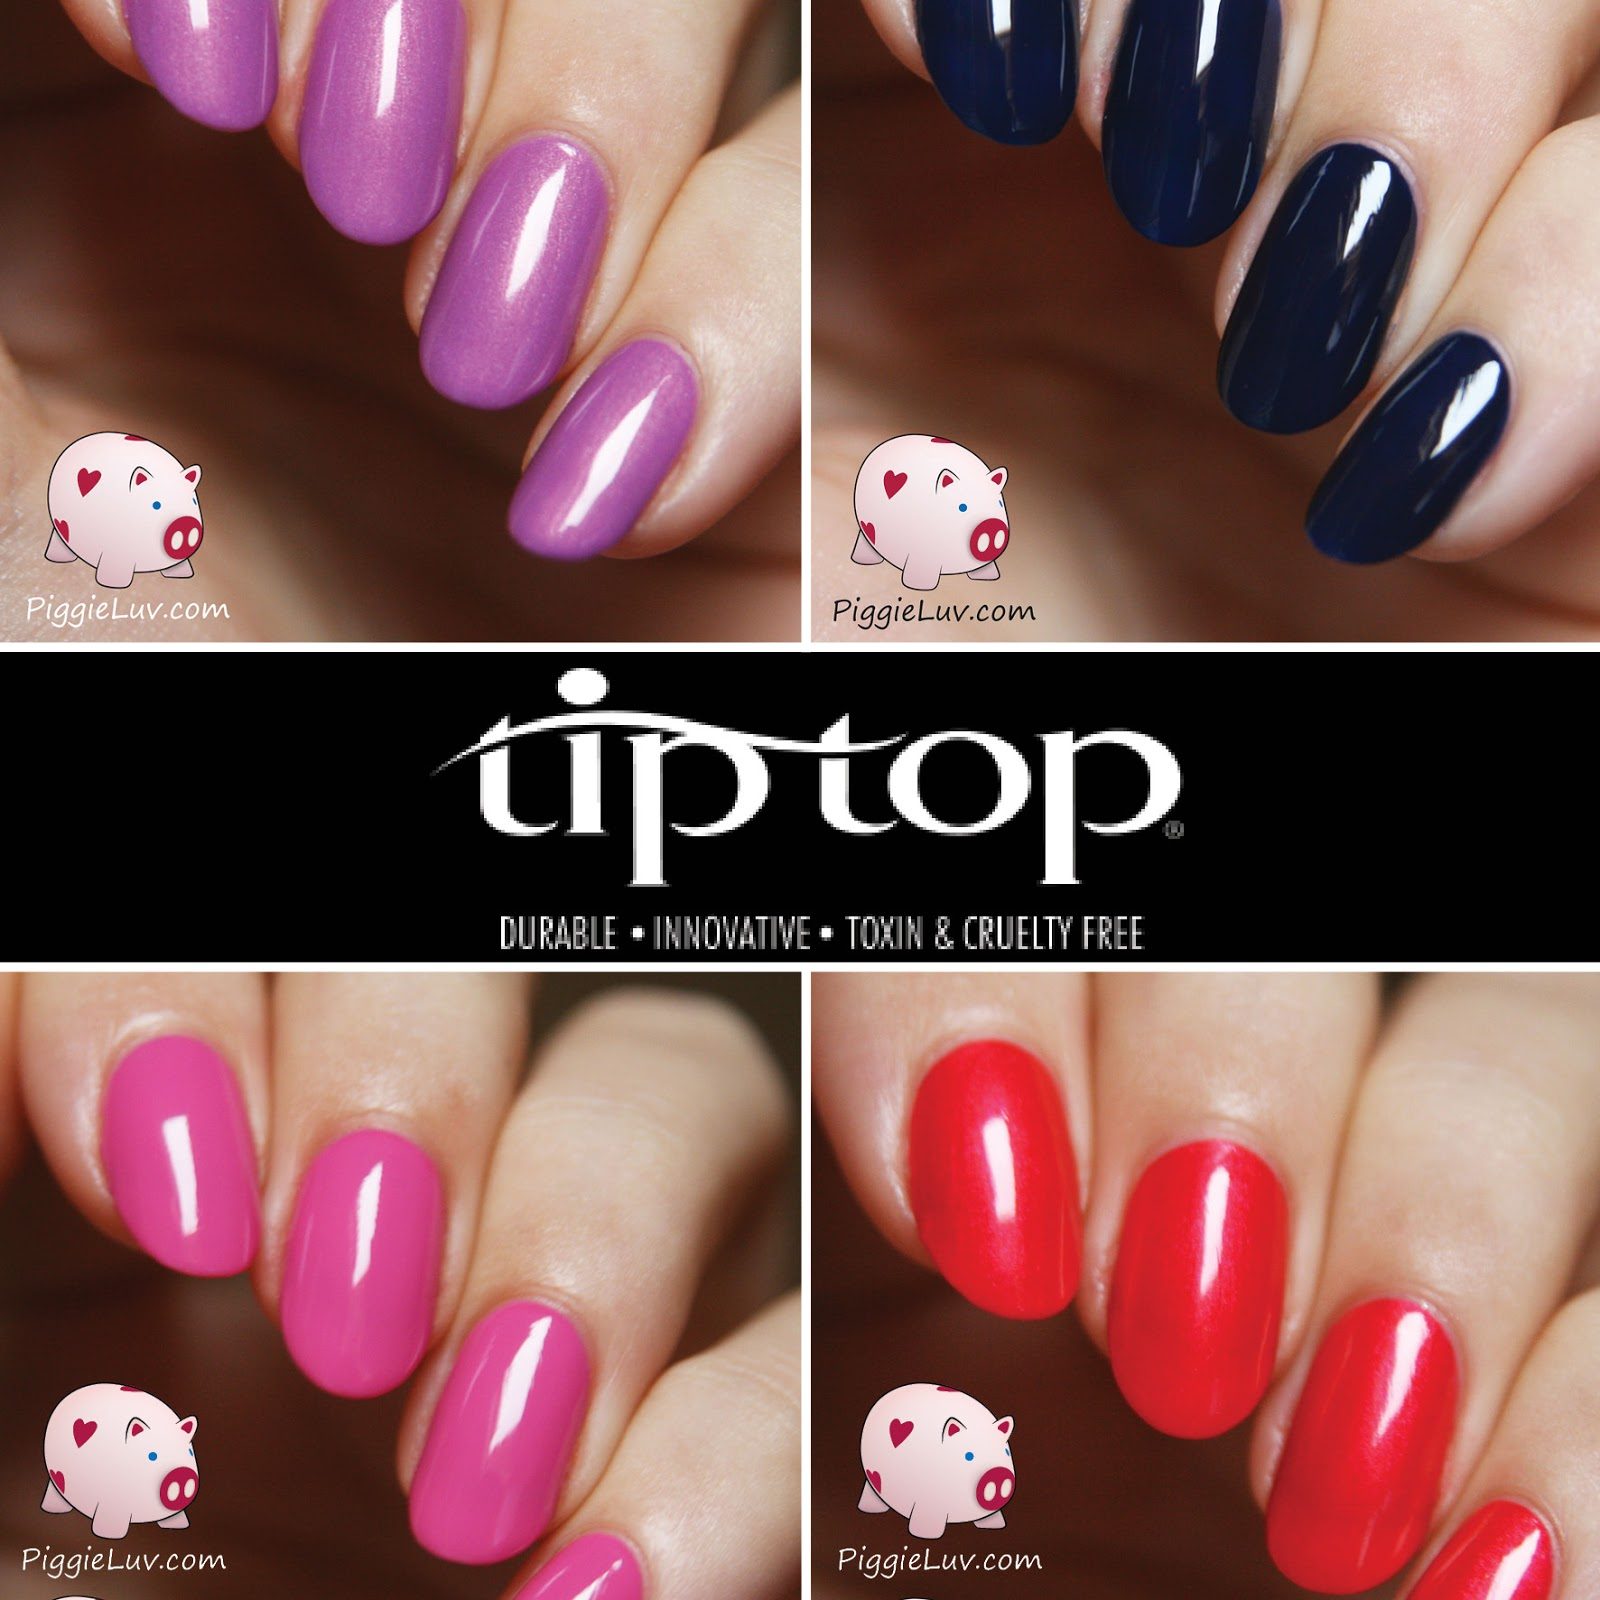 PiggieLuv: Good stuff from Tip Top Nails South Africa!